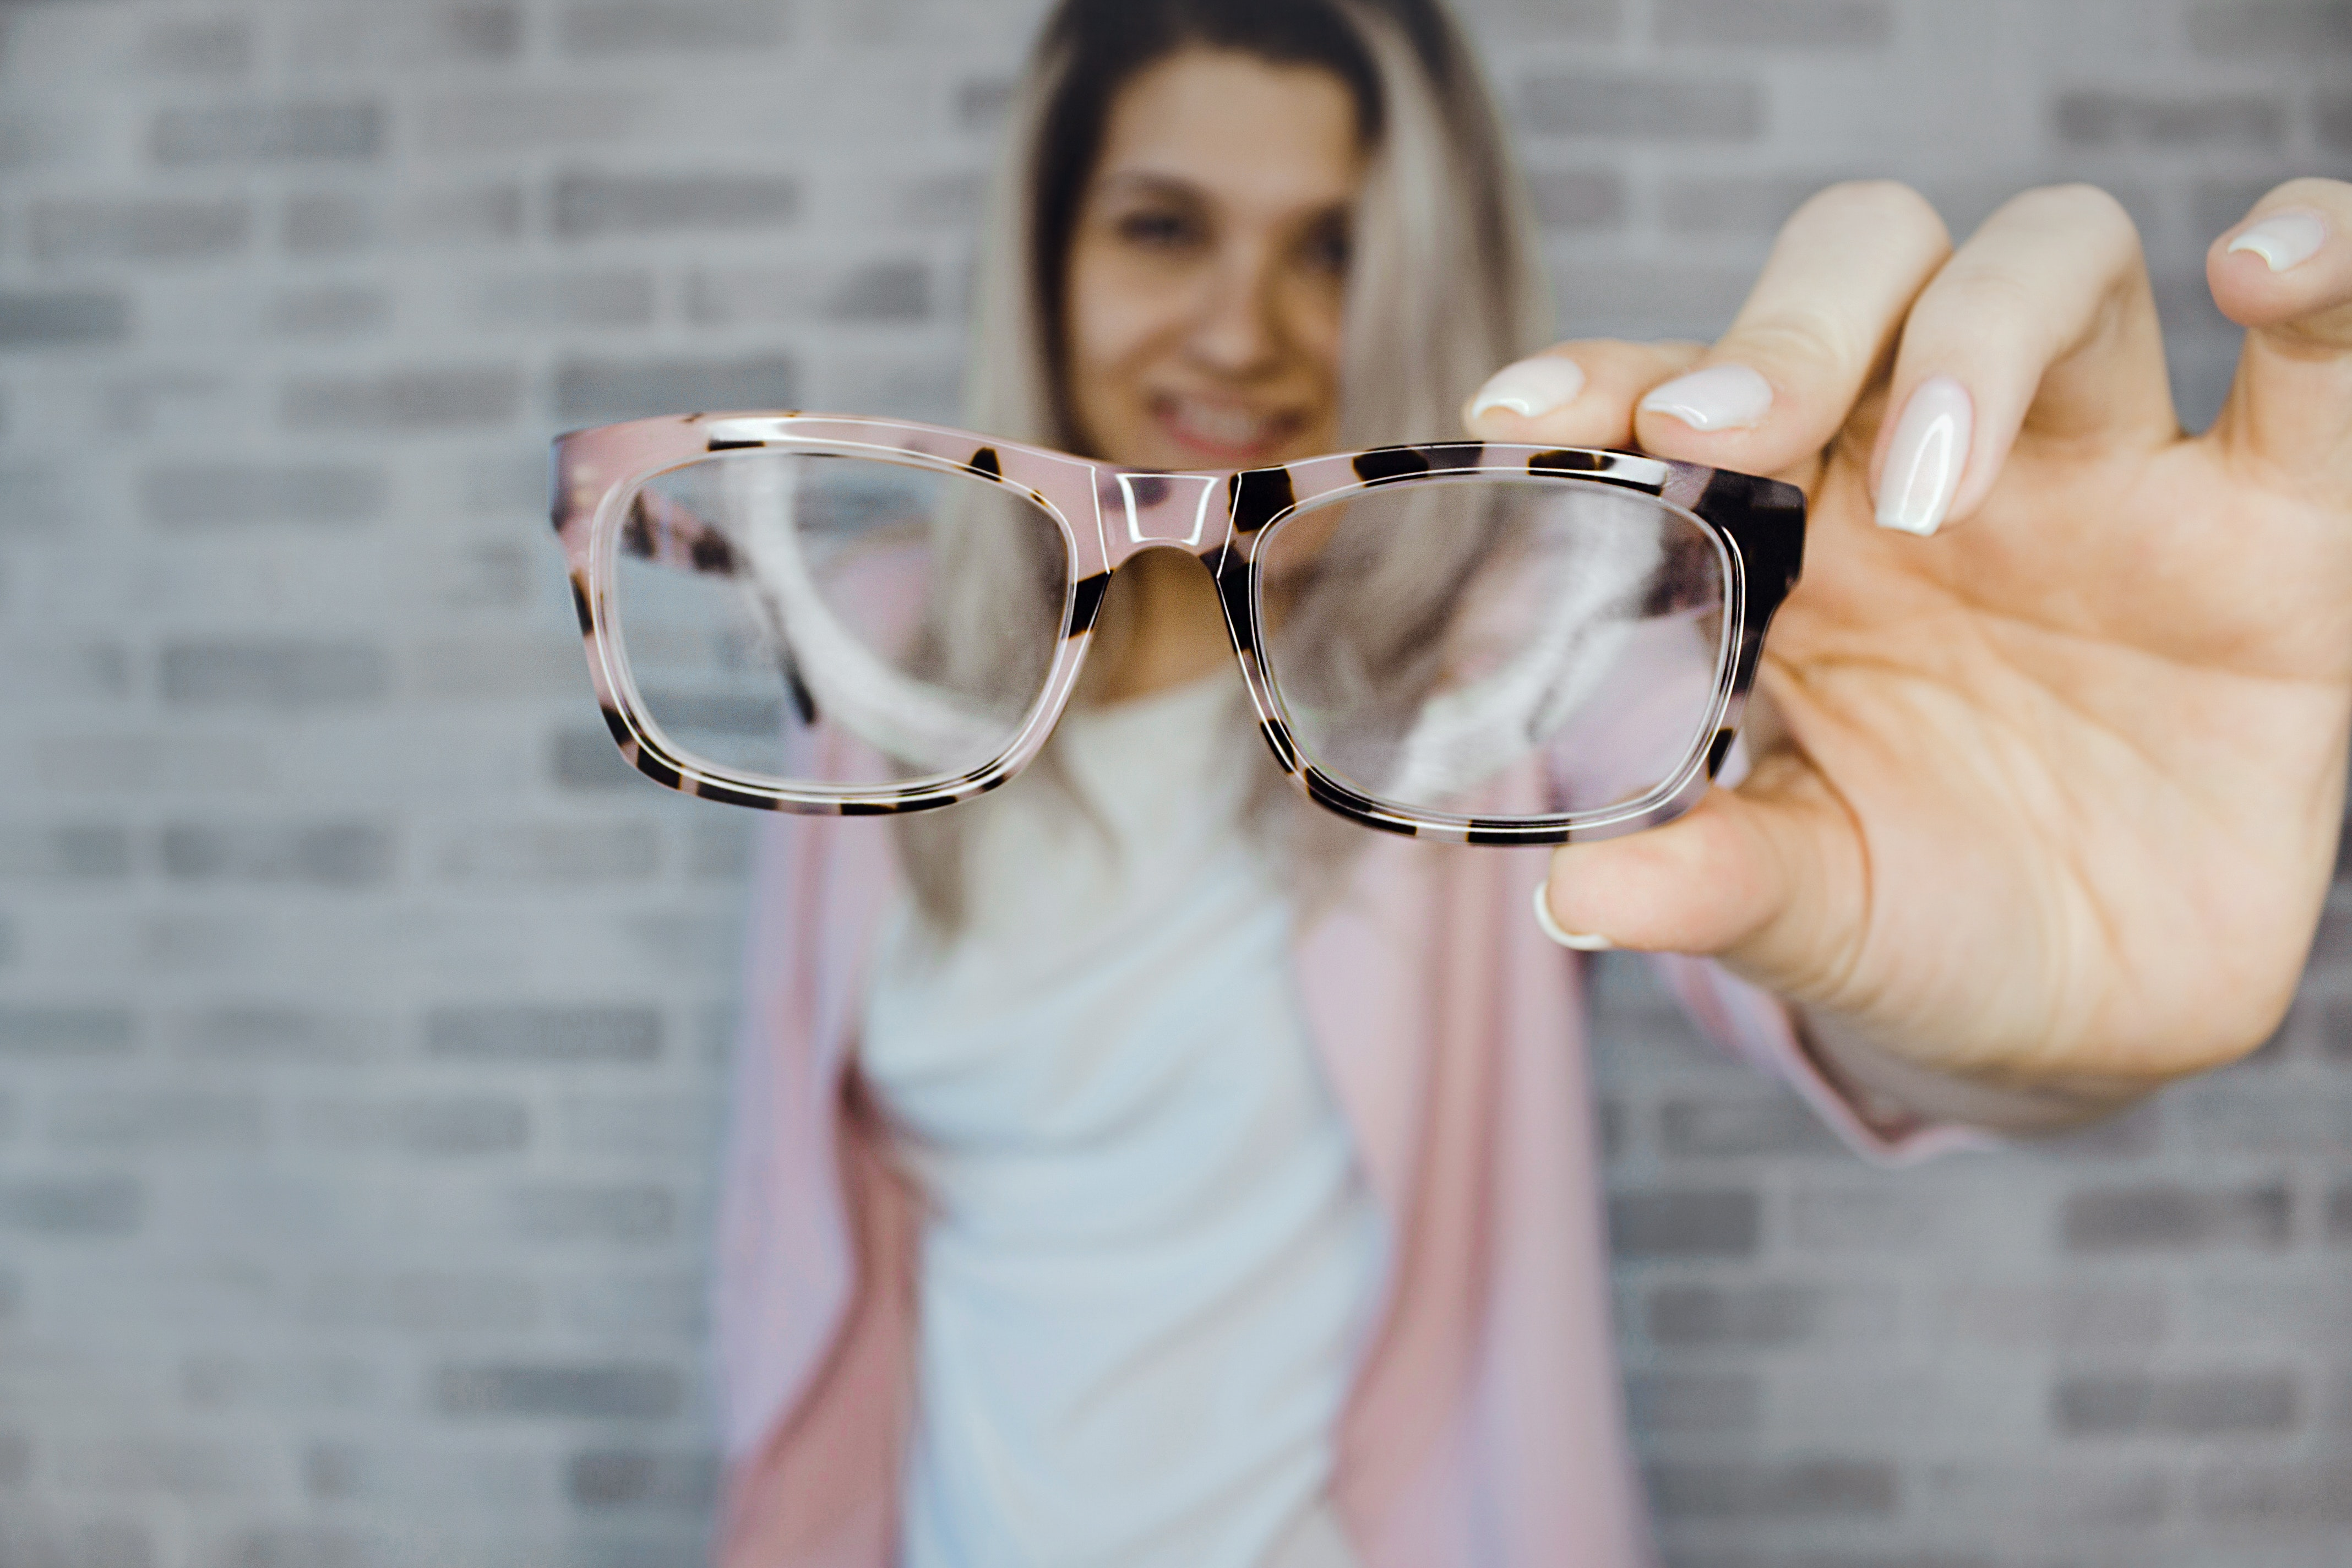 An image of a woman holding her glasses up to the camera.